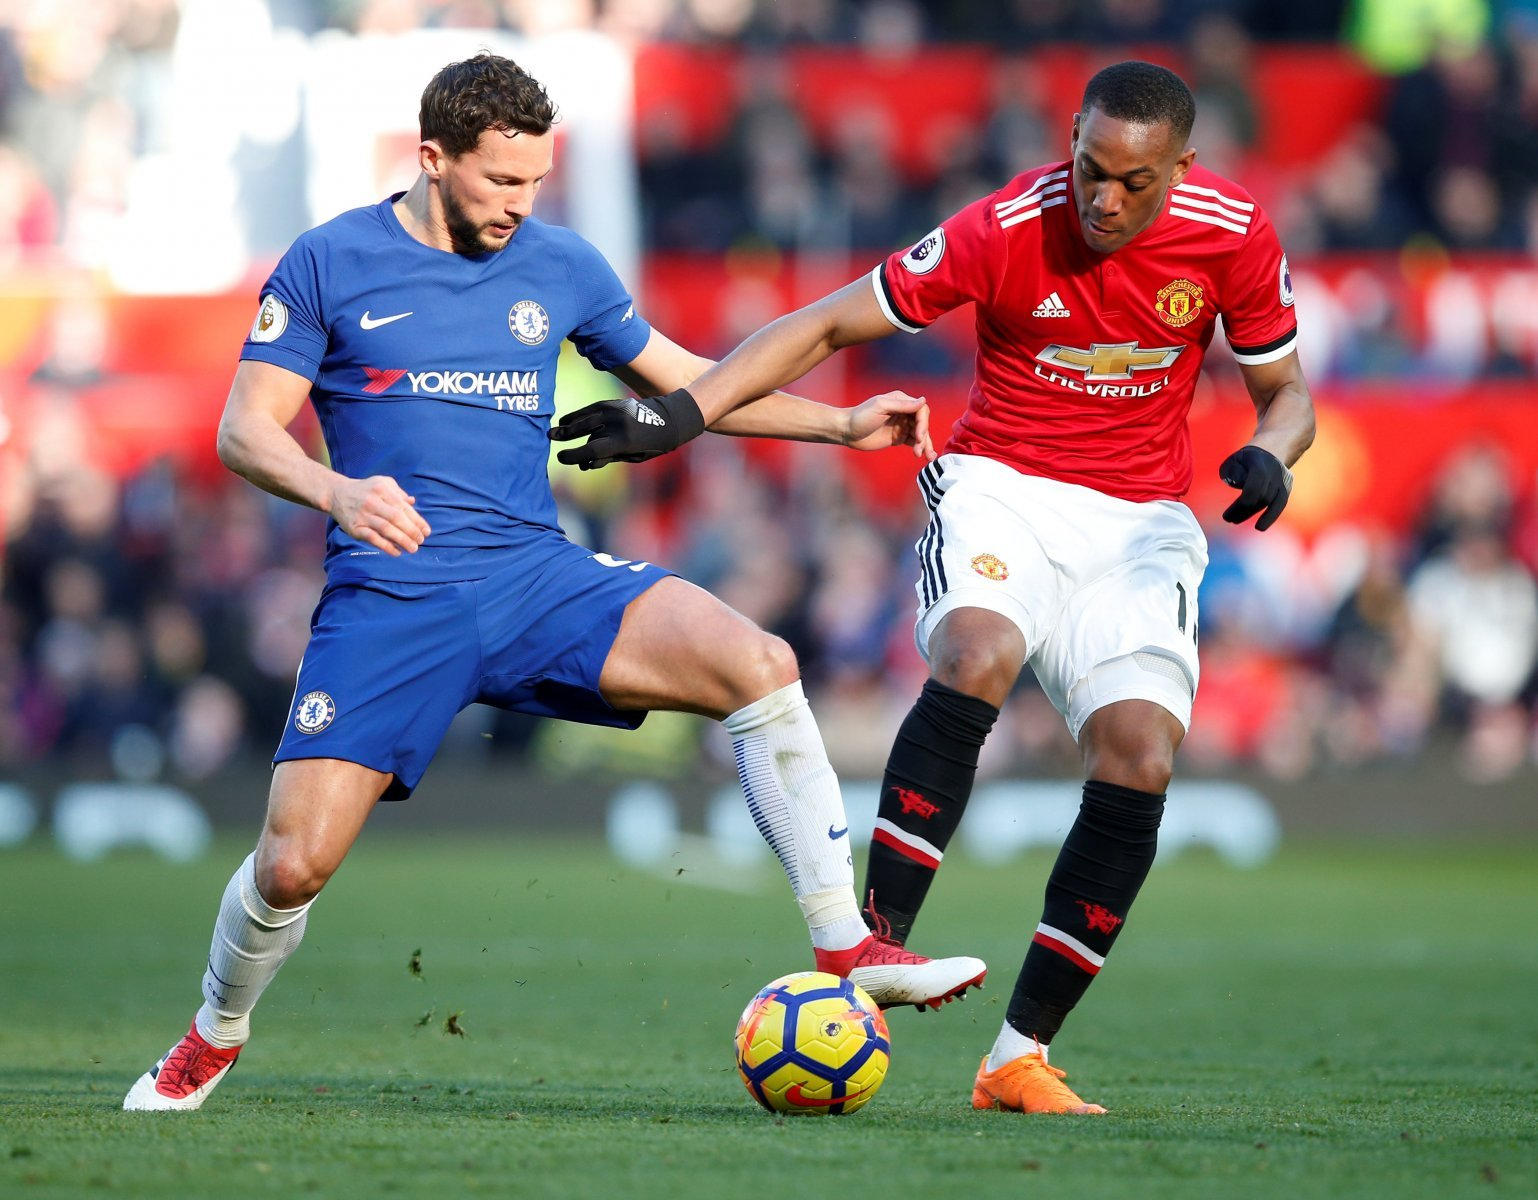 Manchester United do not need Martial and Lingard to pile more misery on Chelsea